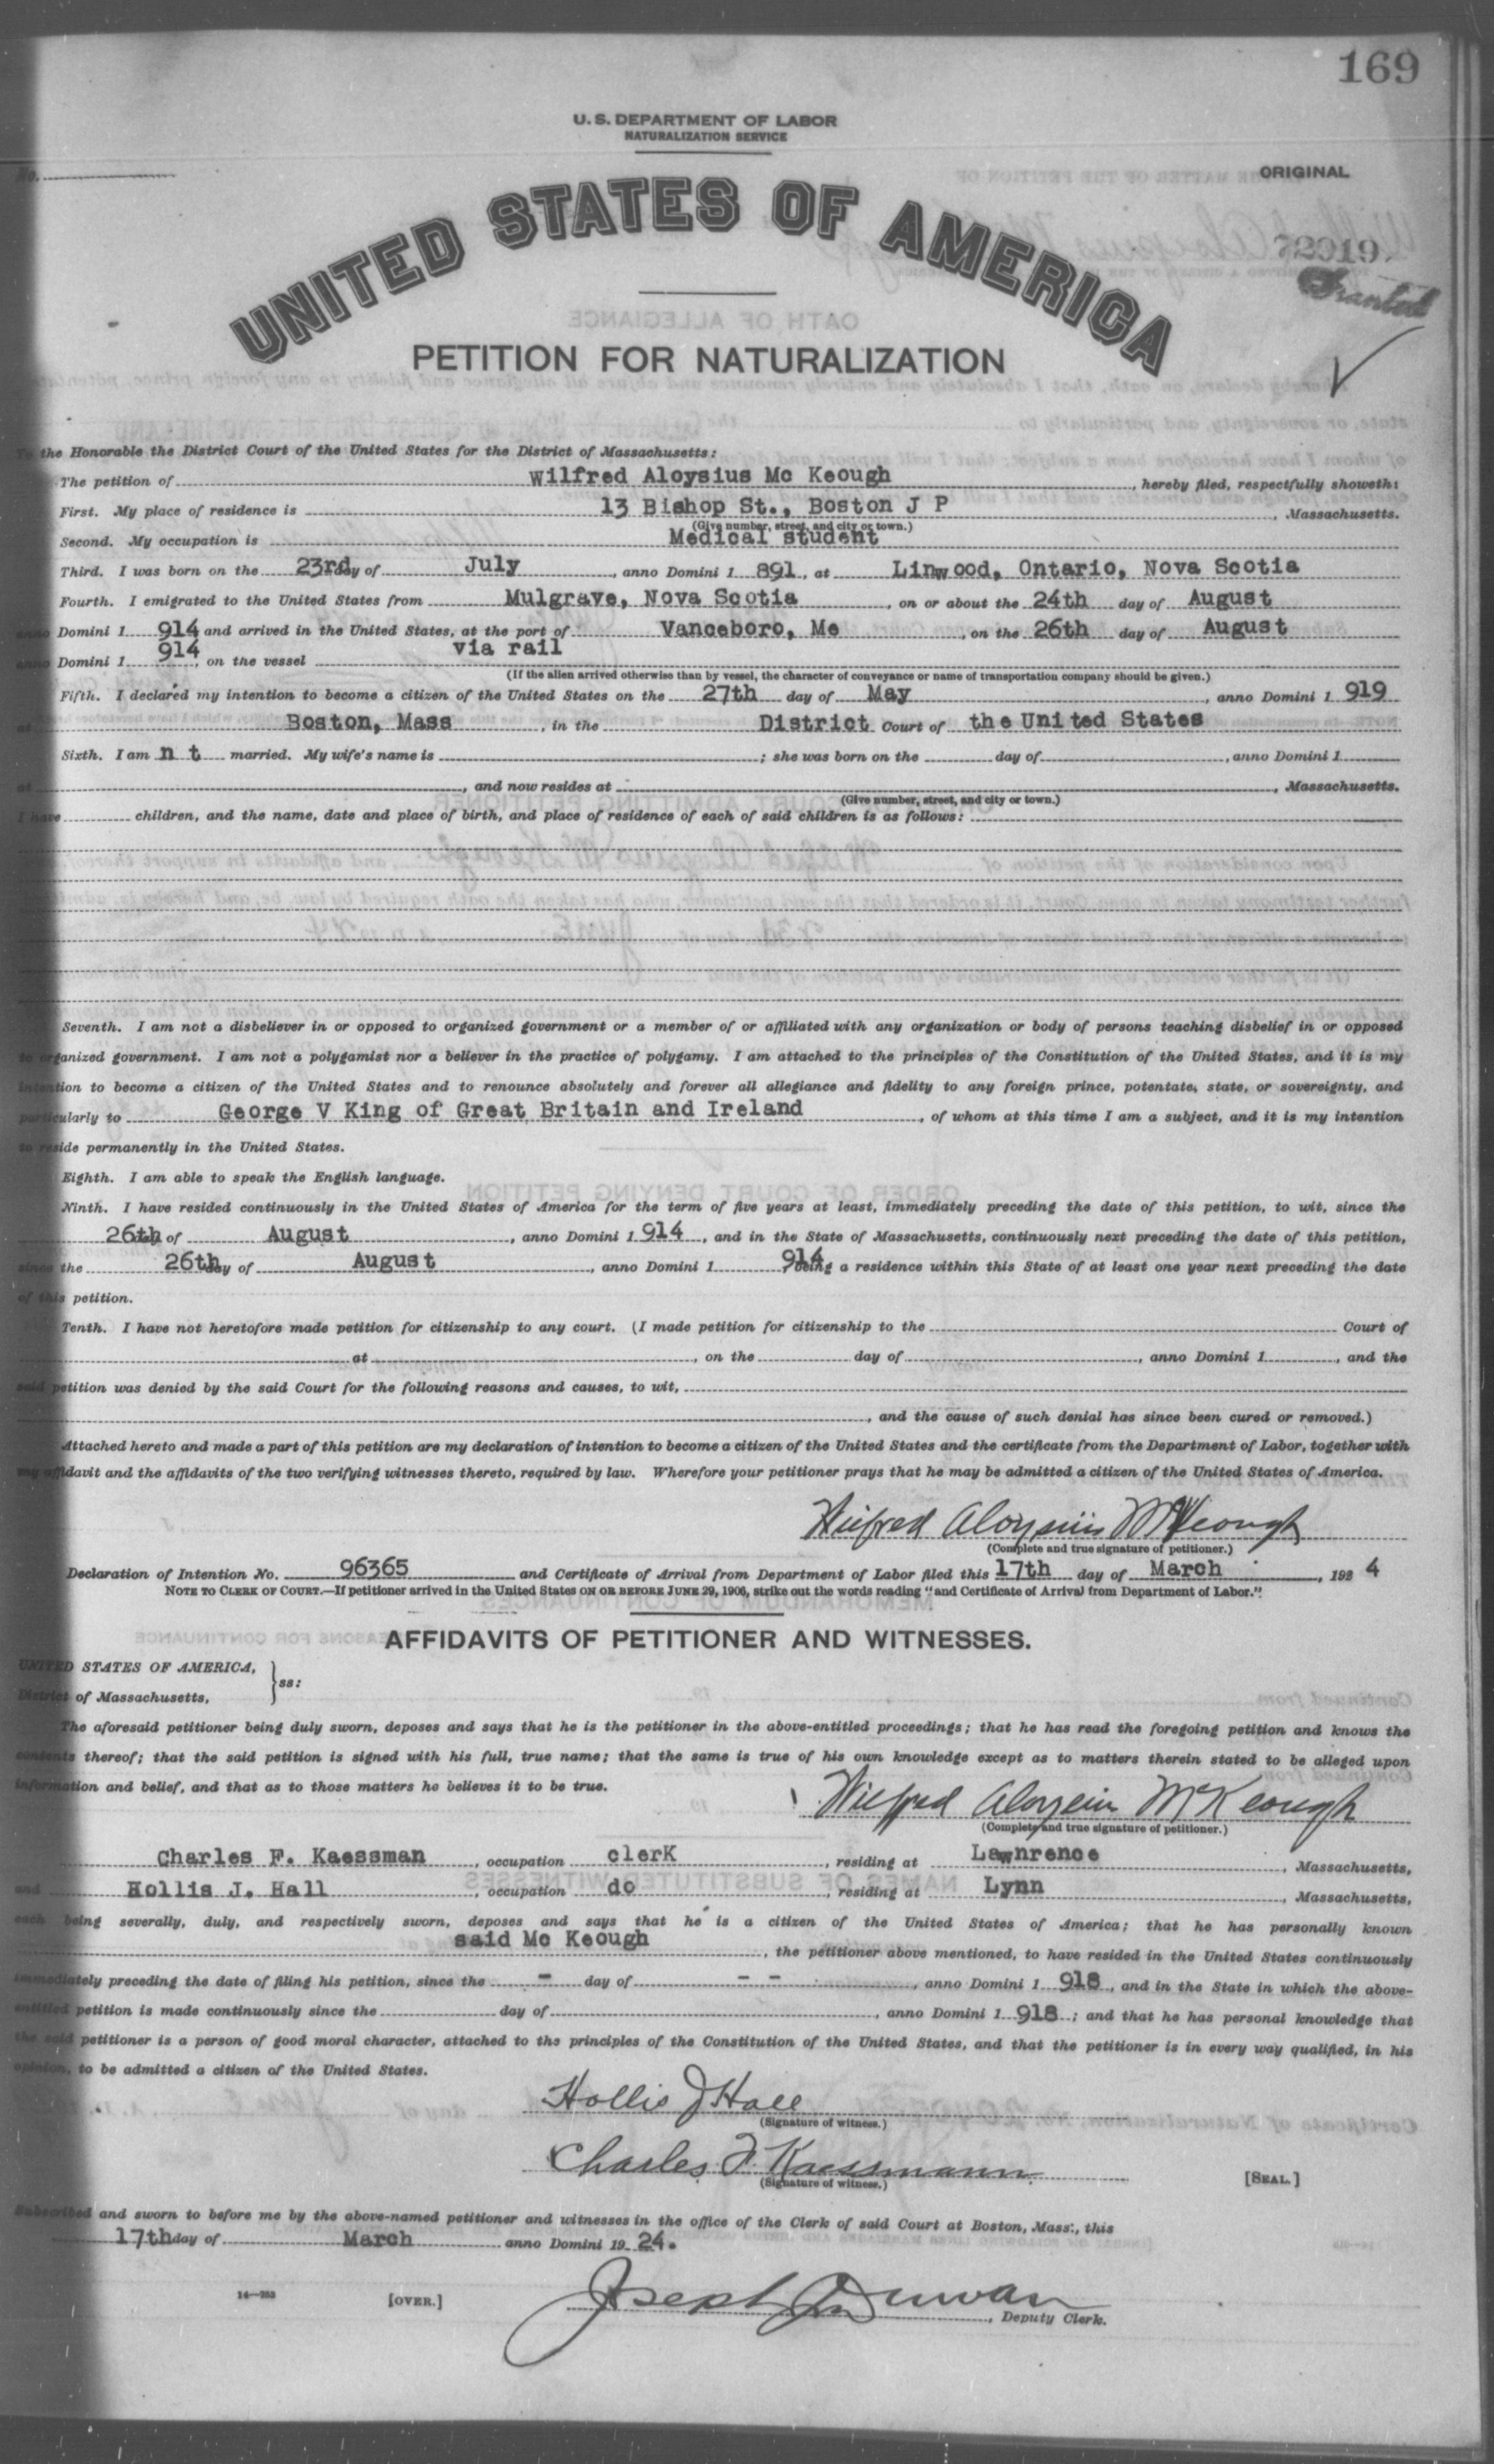 Petition for Naturalization of Wilfred Aloysius Mc Keough